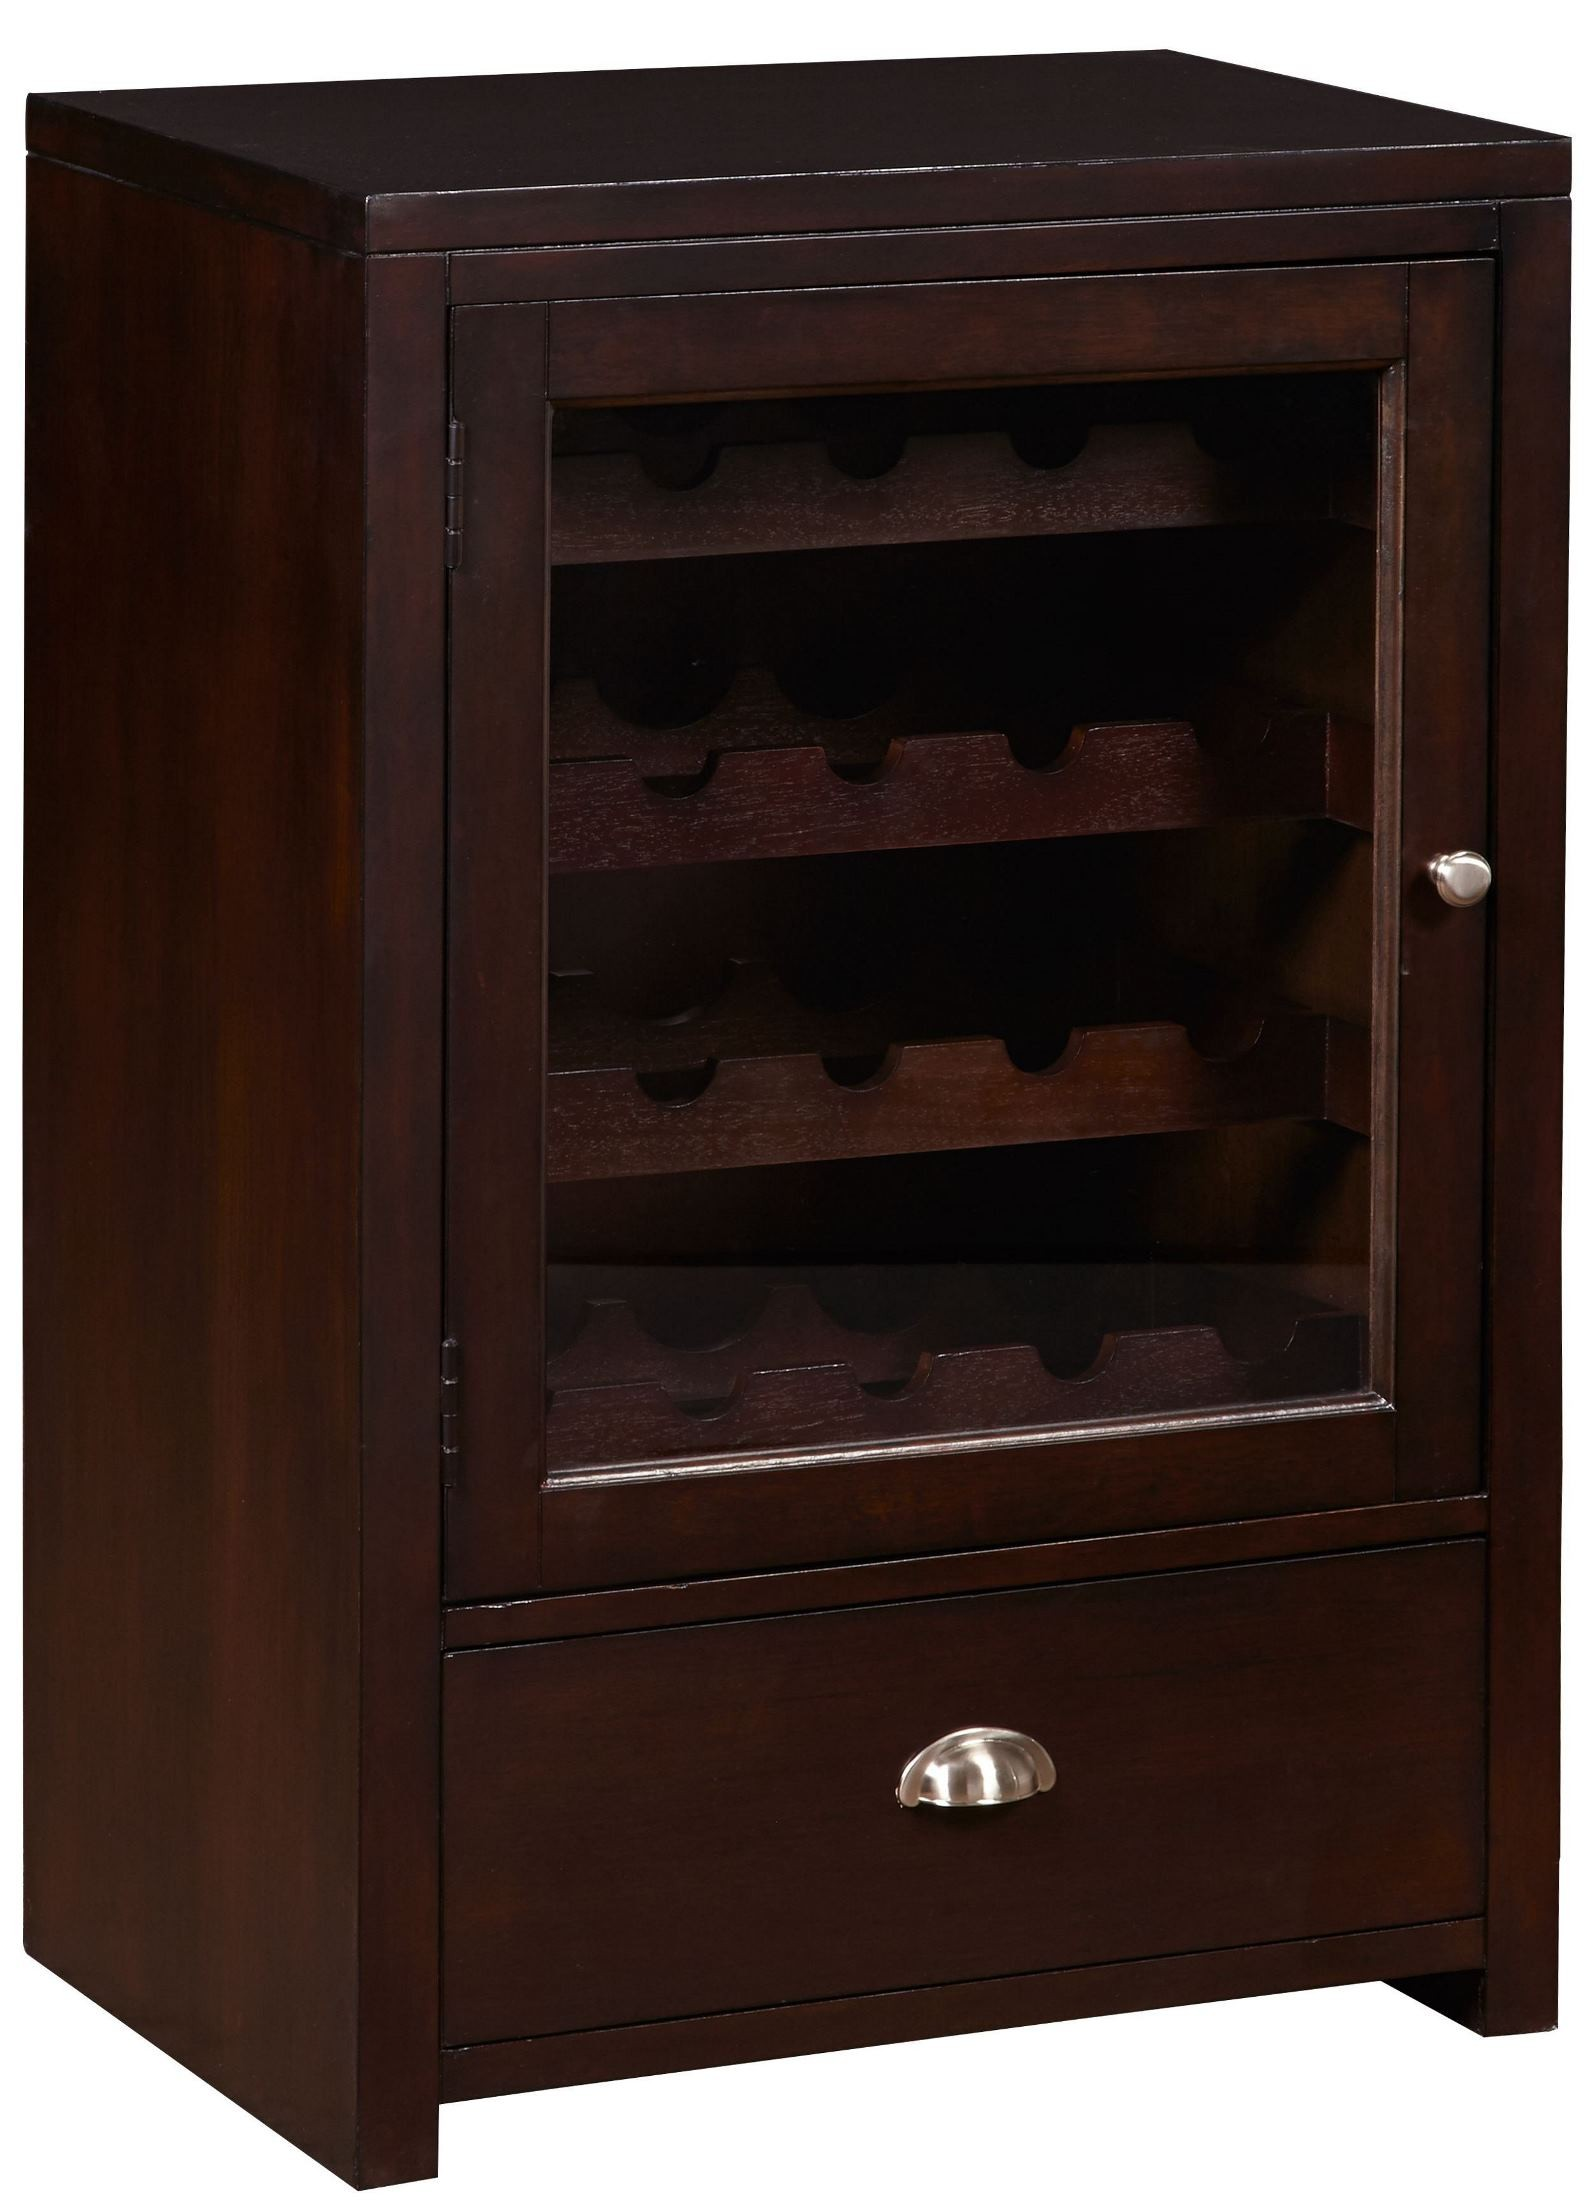 Chocolate drawer wine cabinet ds a086 304 pulaski for Cocoa cabinets